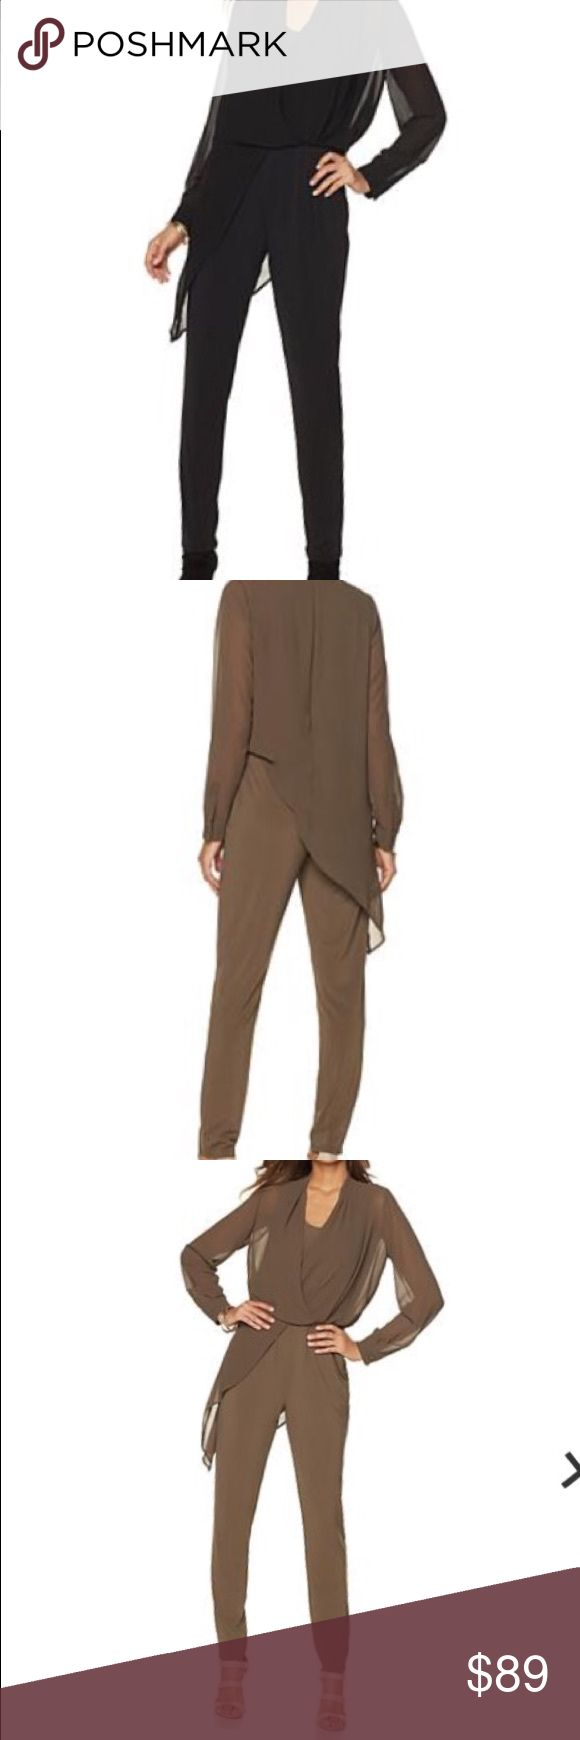 Nene by Nene Leaks Jumpsuit NENE by Nene Leakes Jumpsuit with Sheer Overlay - BLACK. New, never worn. (Pictures from site, to show what it looks like when on.) NENE by NeNe Leakes Pants Jumpsuits & Rompers